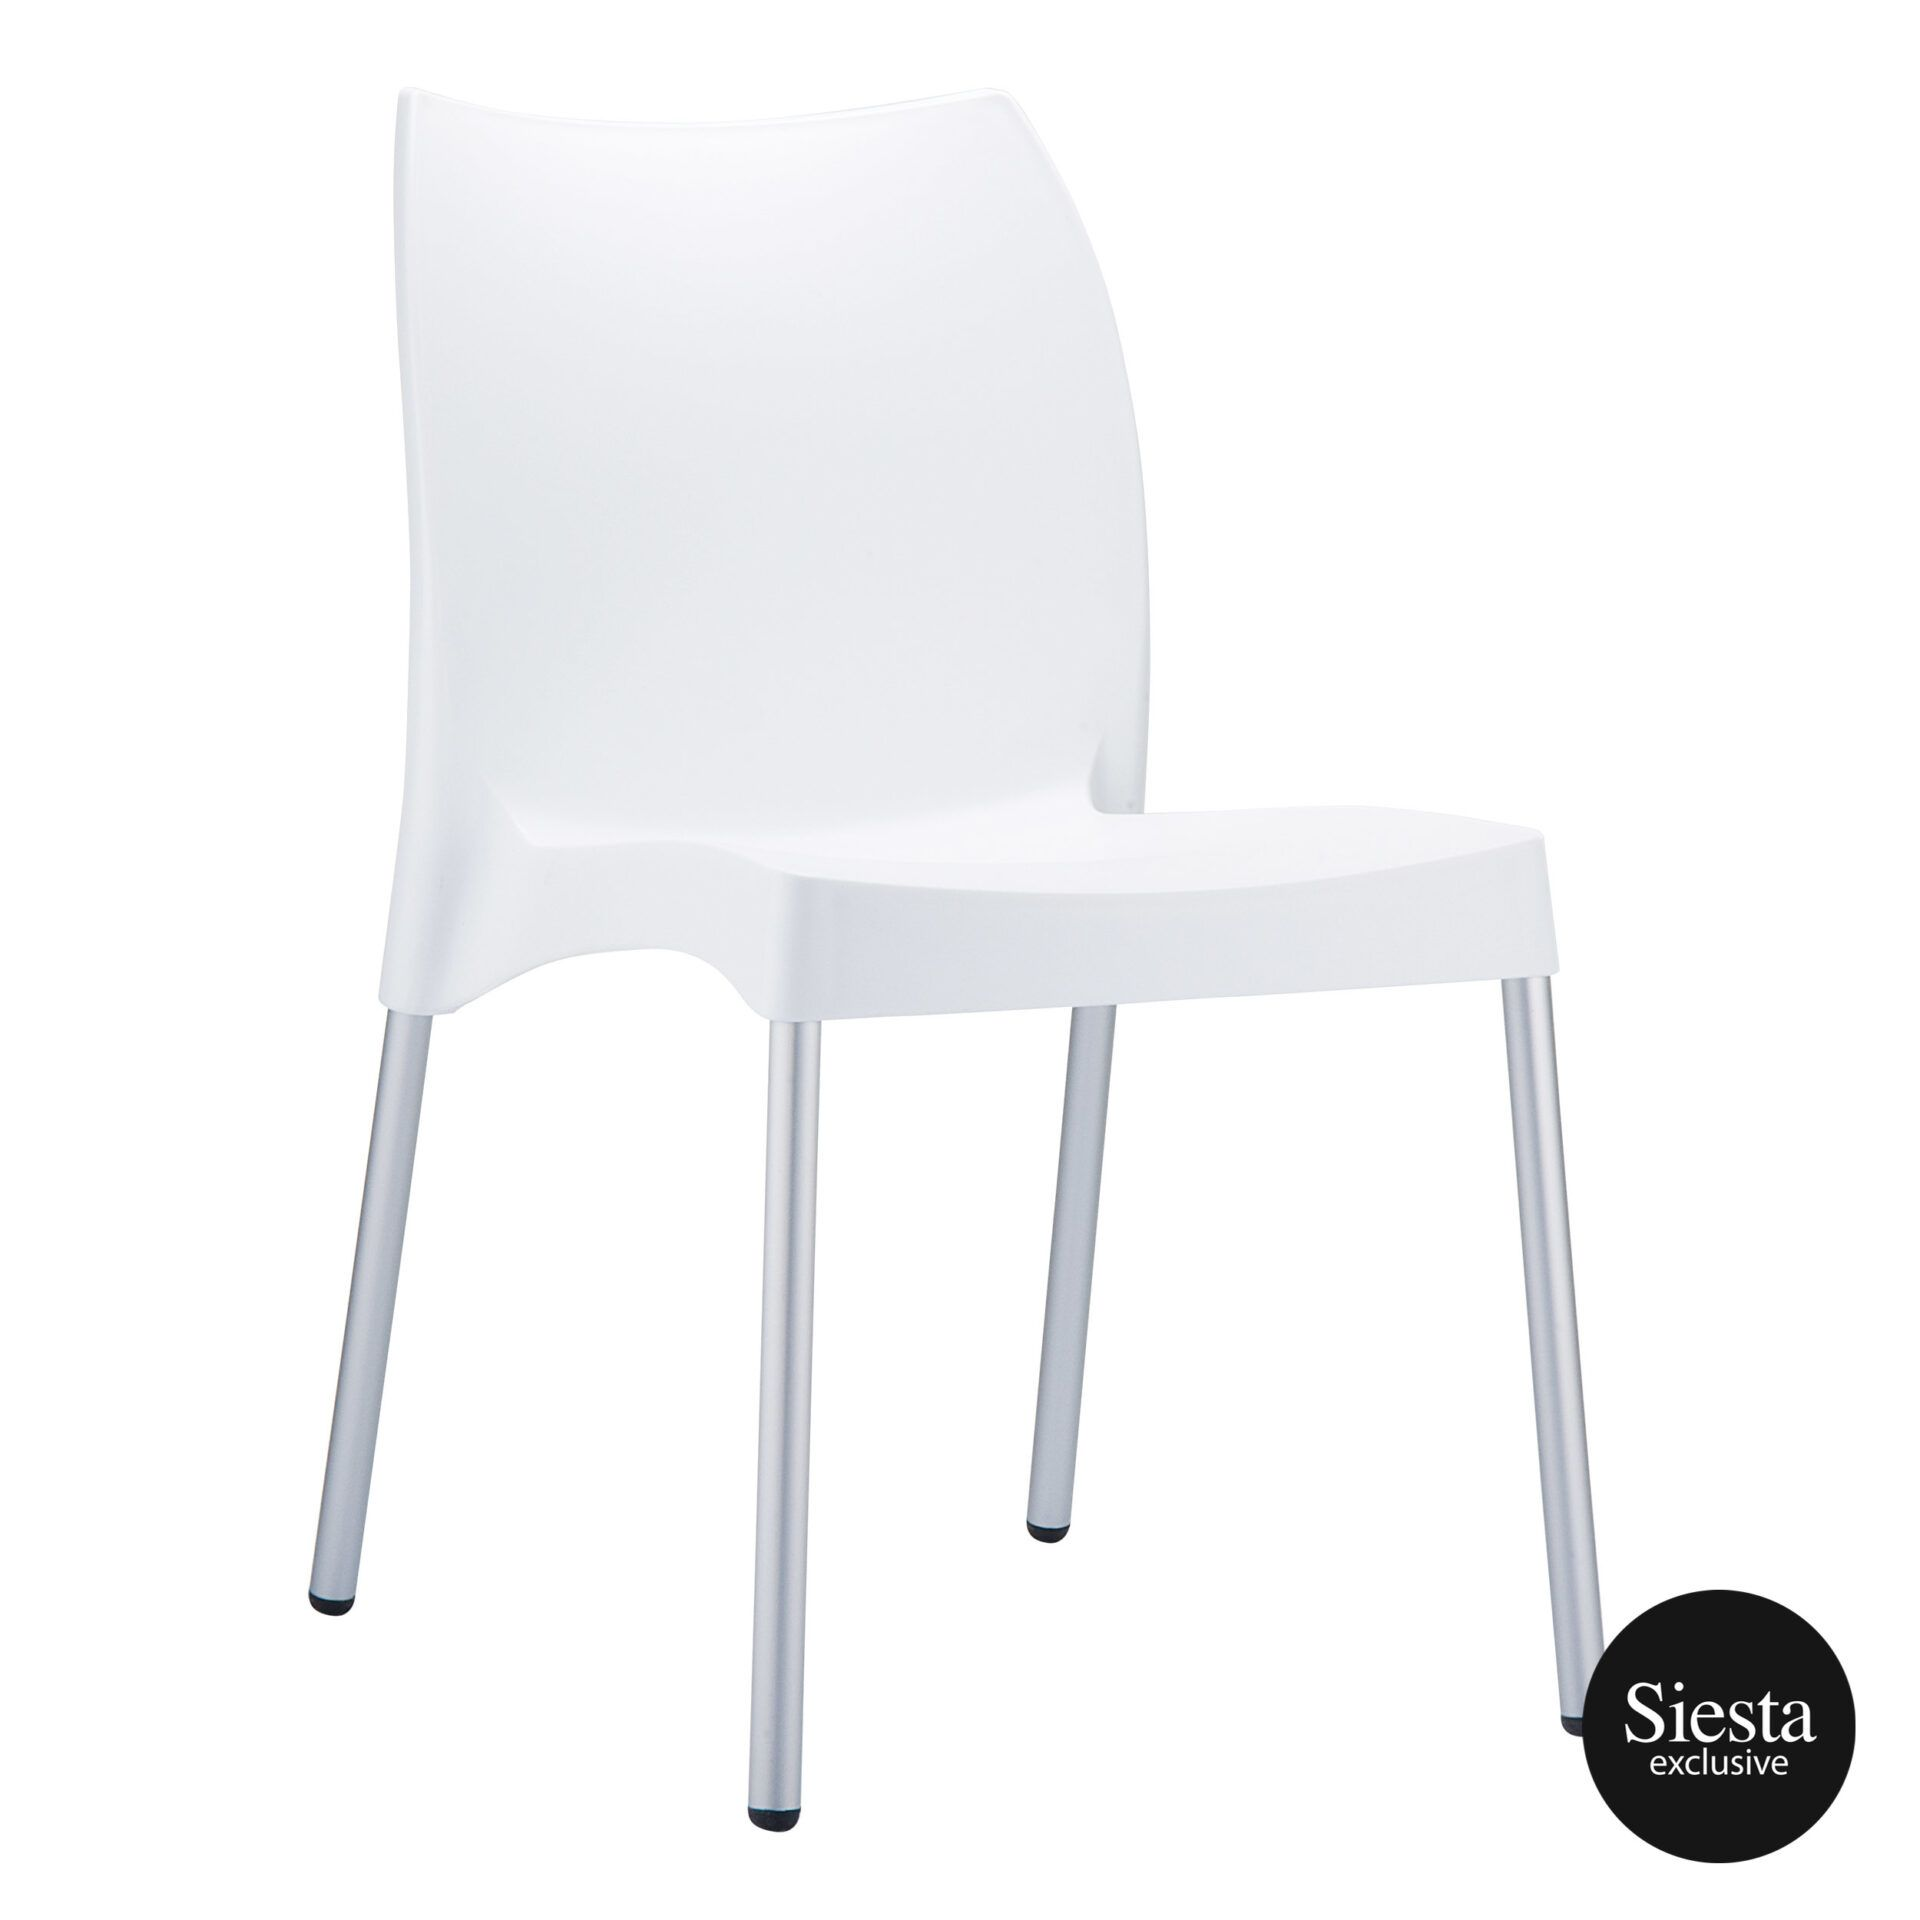 commercial outdoor hospitality seating vita chair white front side 1